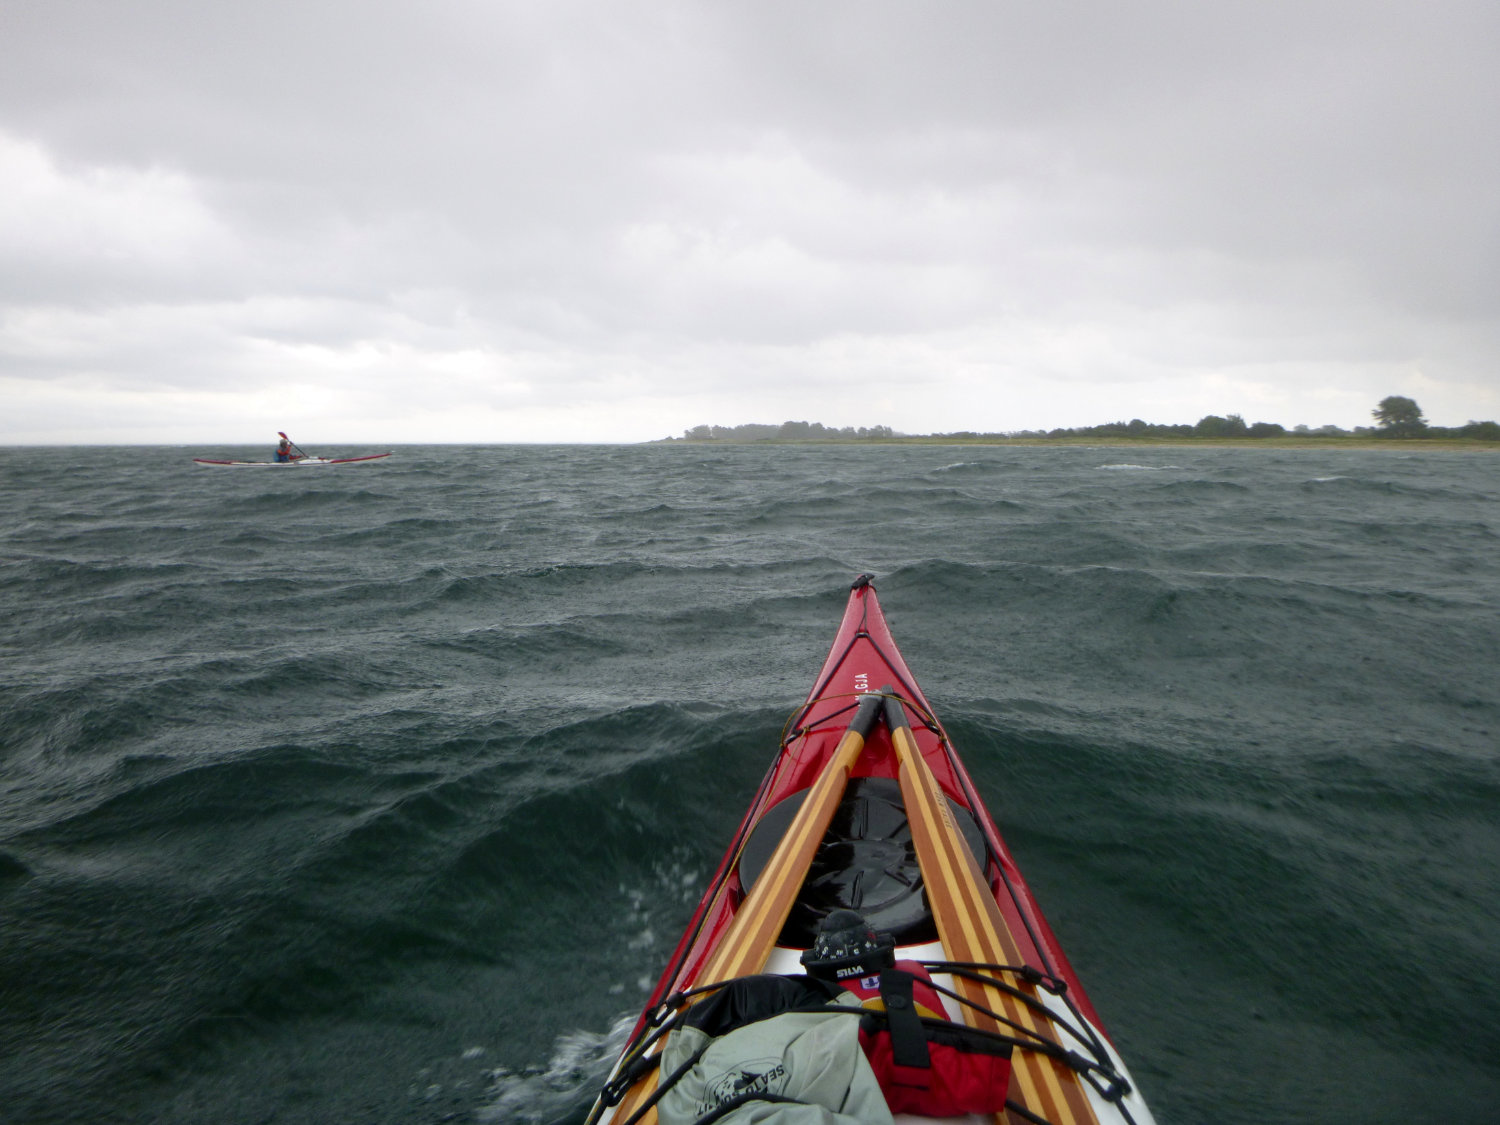 downwind is a quick one